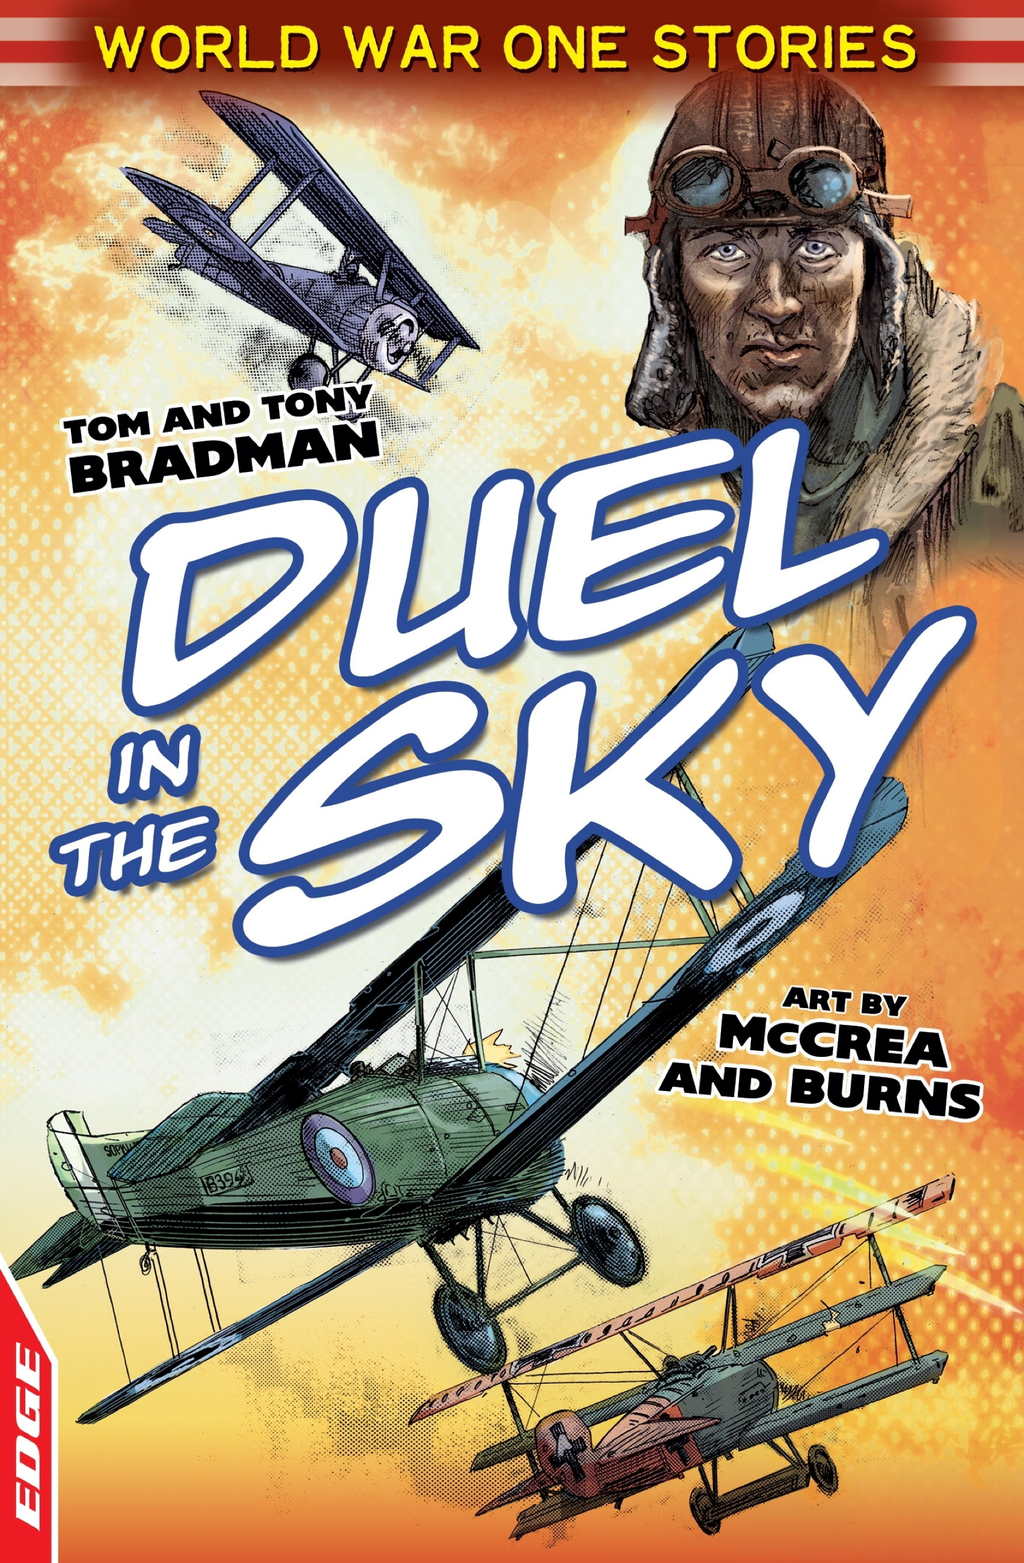 EDGE: World War One Short Stories: Duel In The Sky